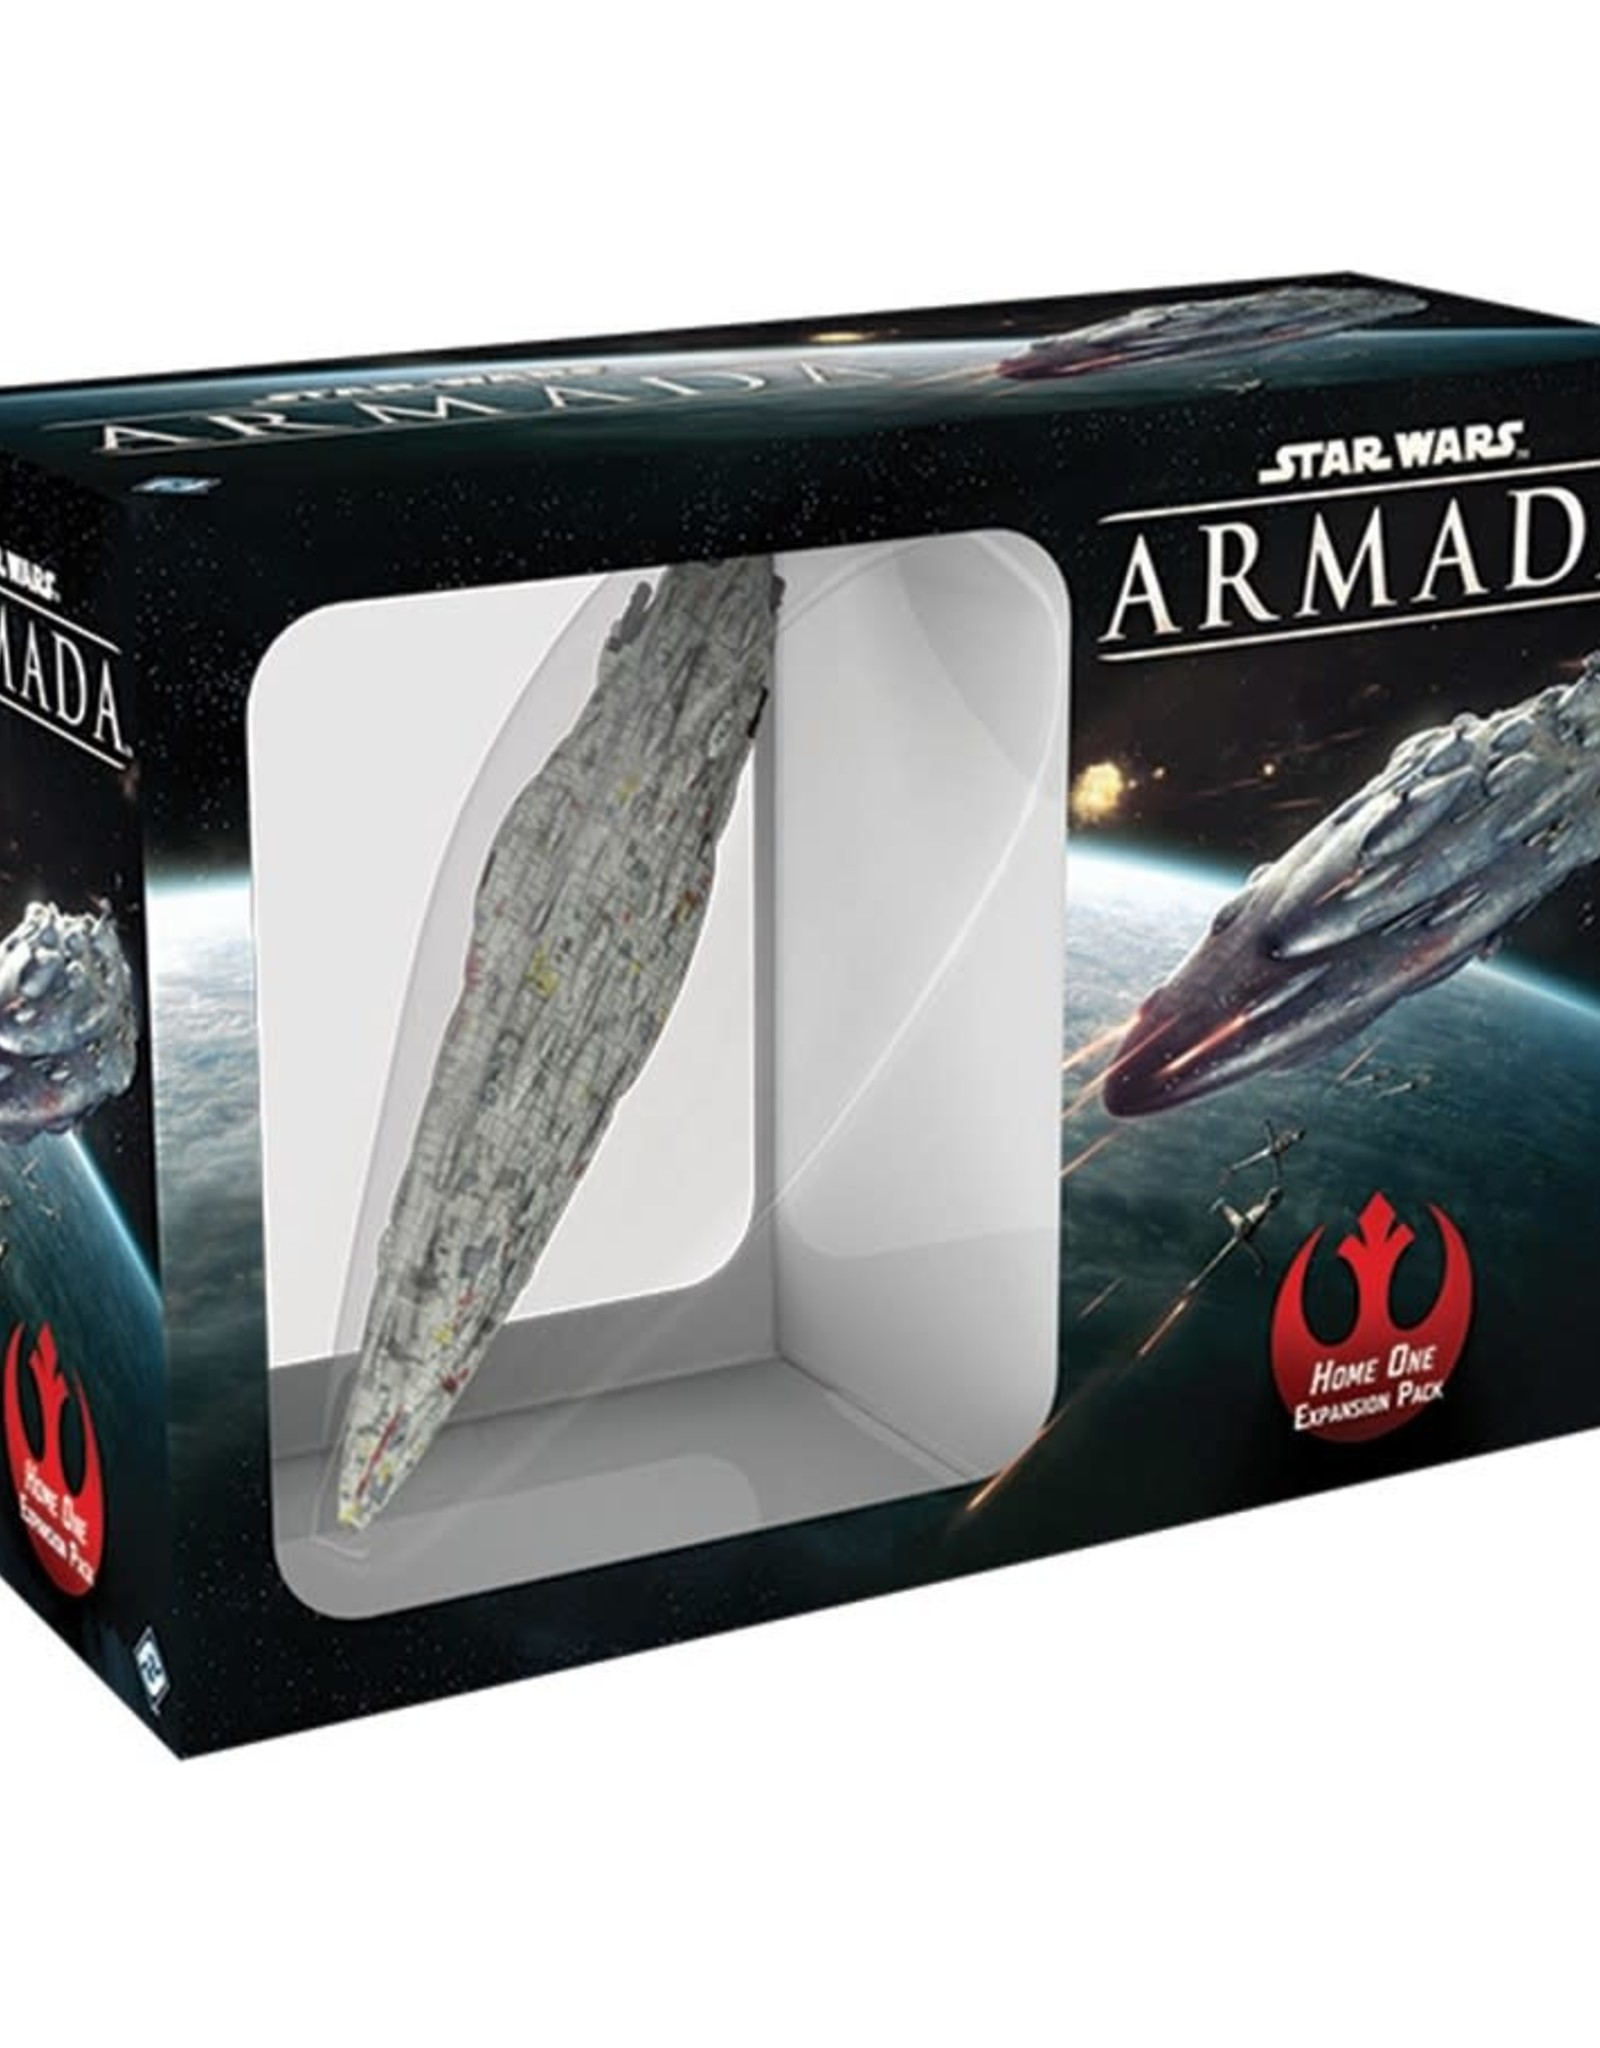 Fantasy Flight Games Star Wars Armada Home One Expansion